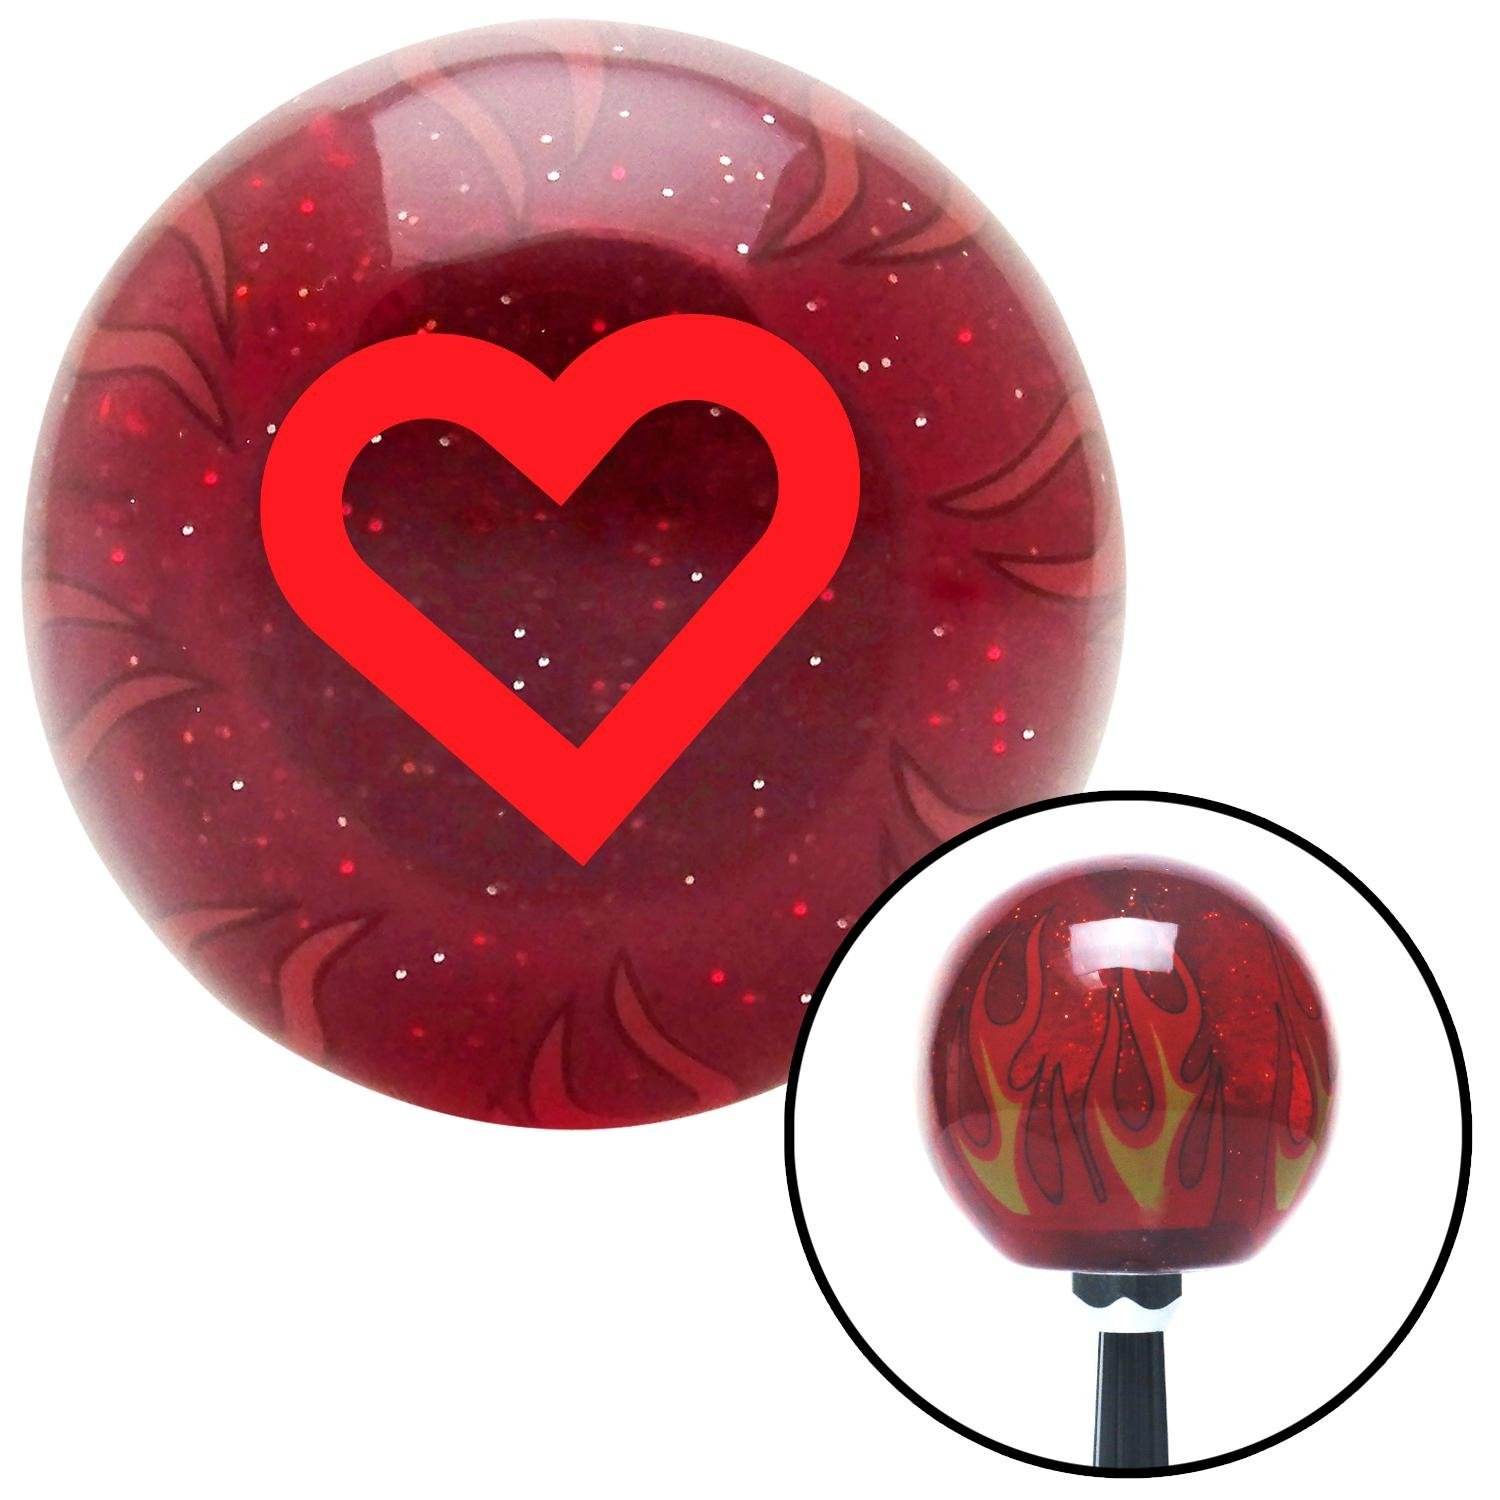 Red Fat Outlined Heart American Shifter 237070 Red Flame Metal Flake Shift Knob with M16 x 1.5 Insert